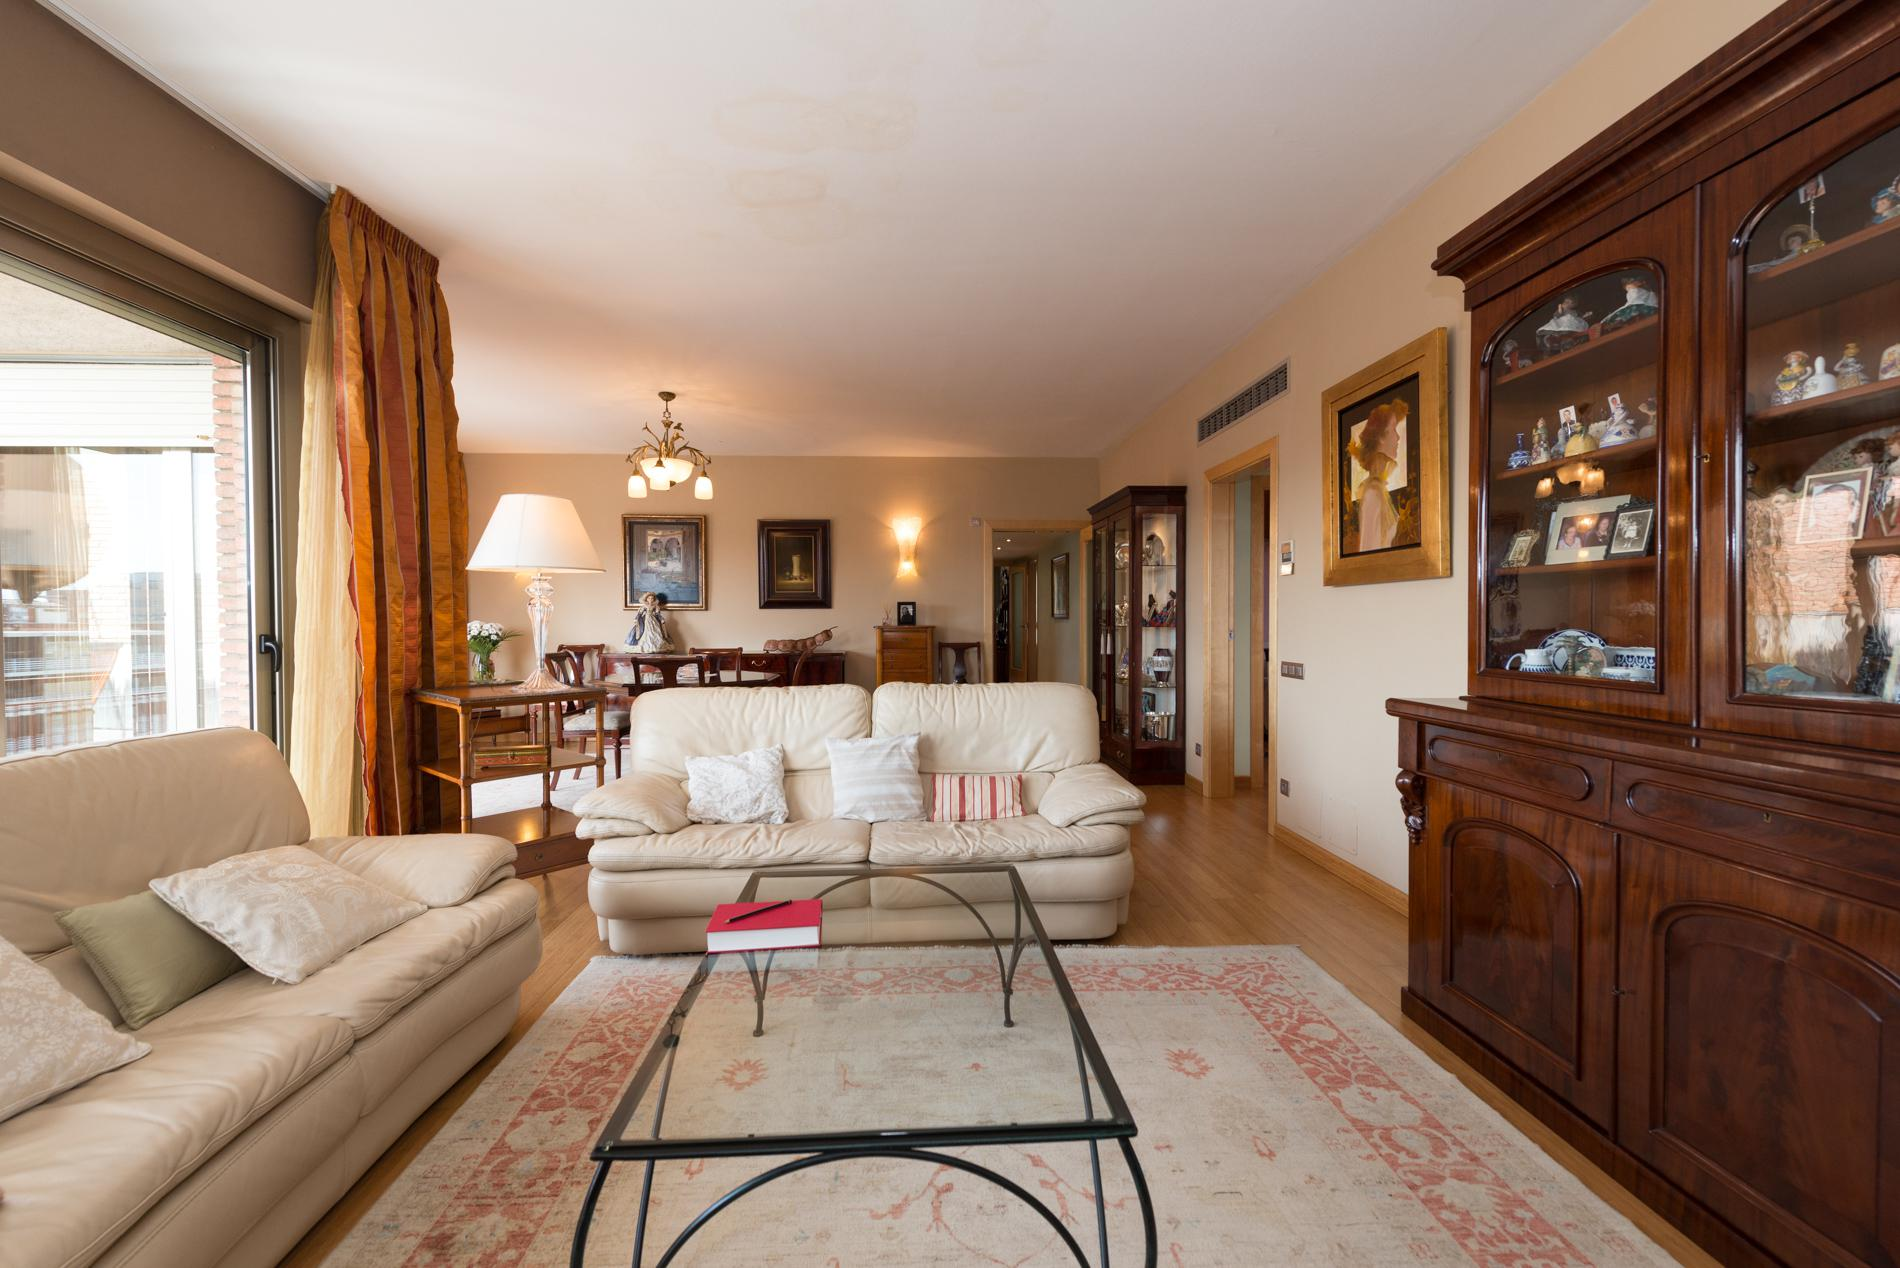 243582 Penthouse for sale in Sarrià-Sant Gervasi, Sant Gervasi-Galvany 26